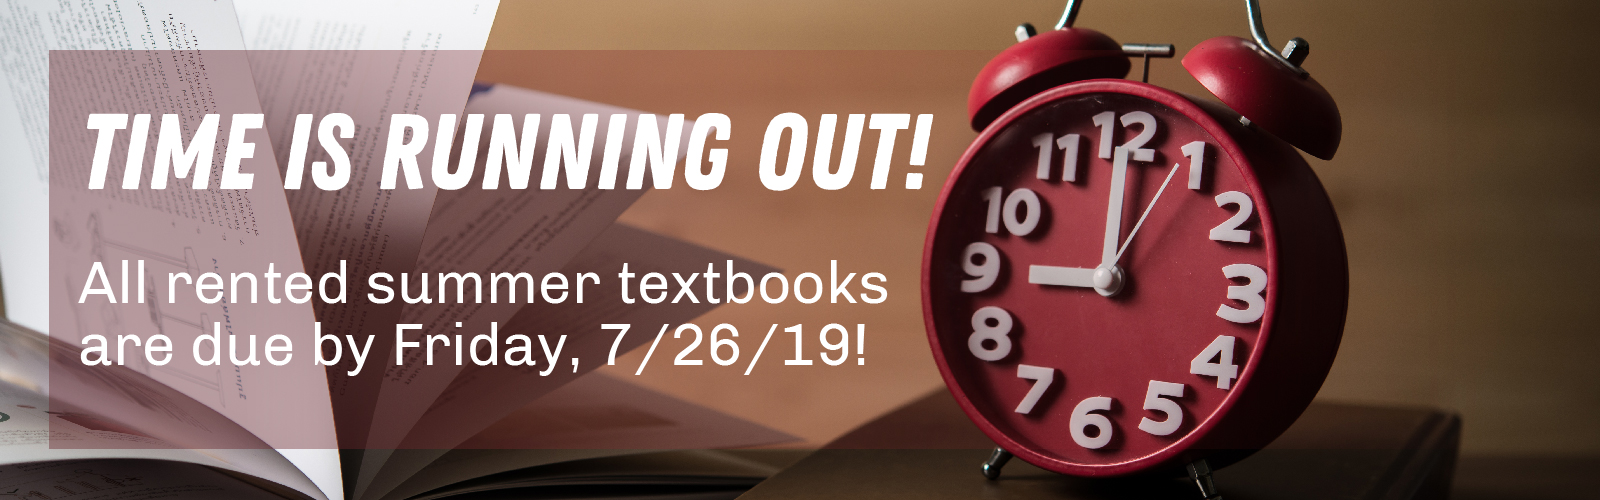 All rental textbooks due 7/26/19